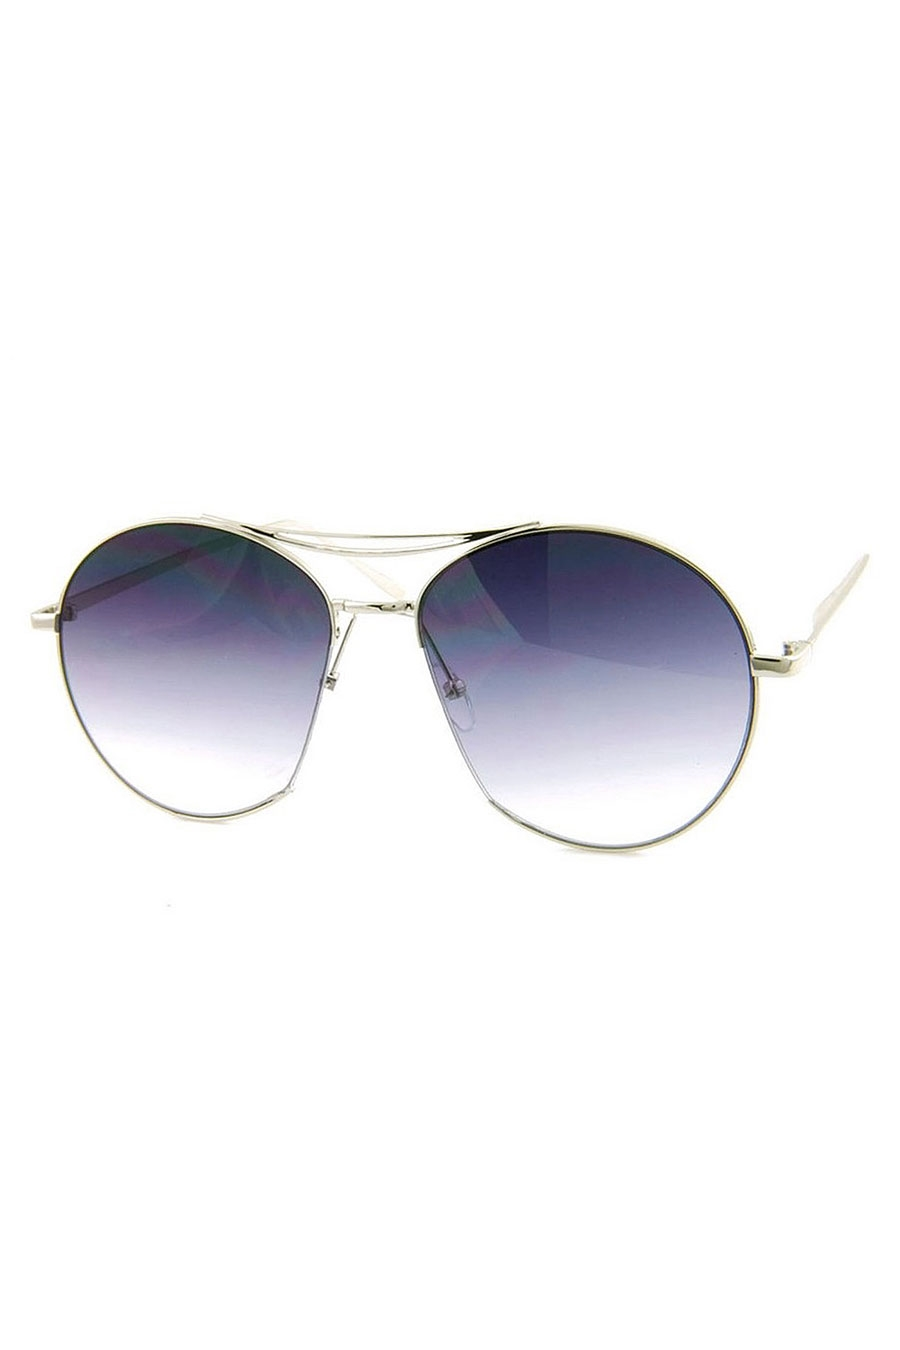 FLAT LENS METAL SUNGLASSES - orangeshine.com